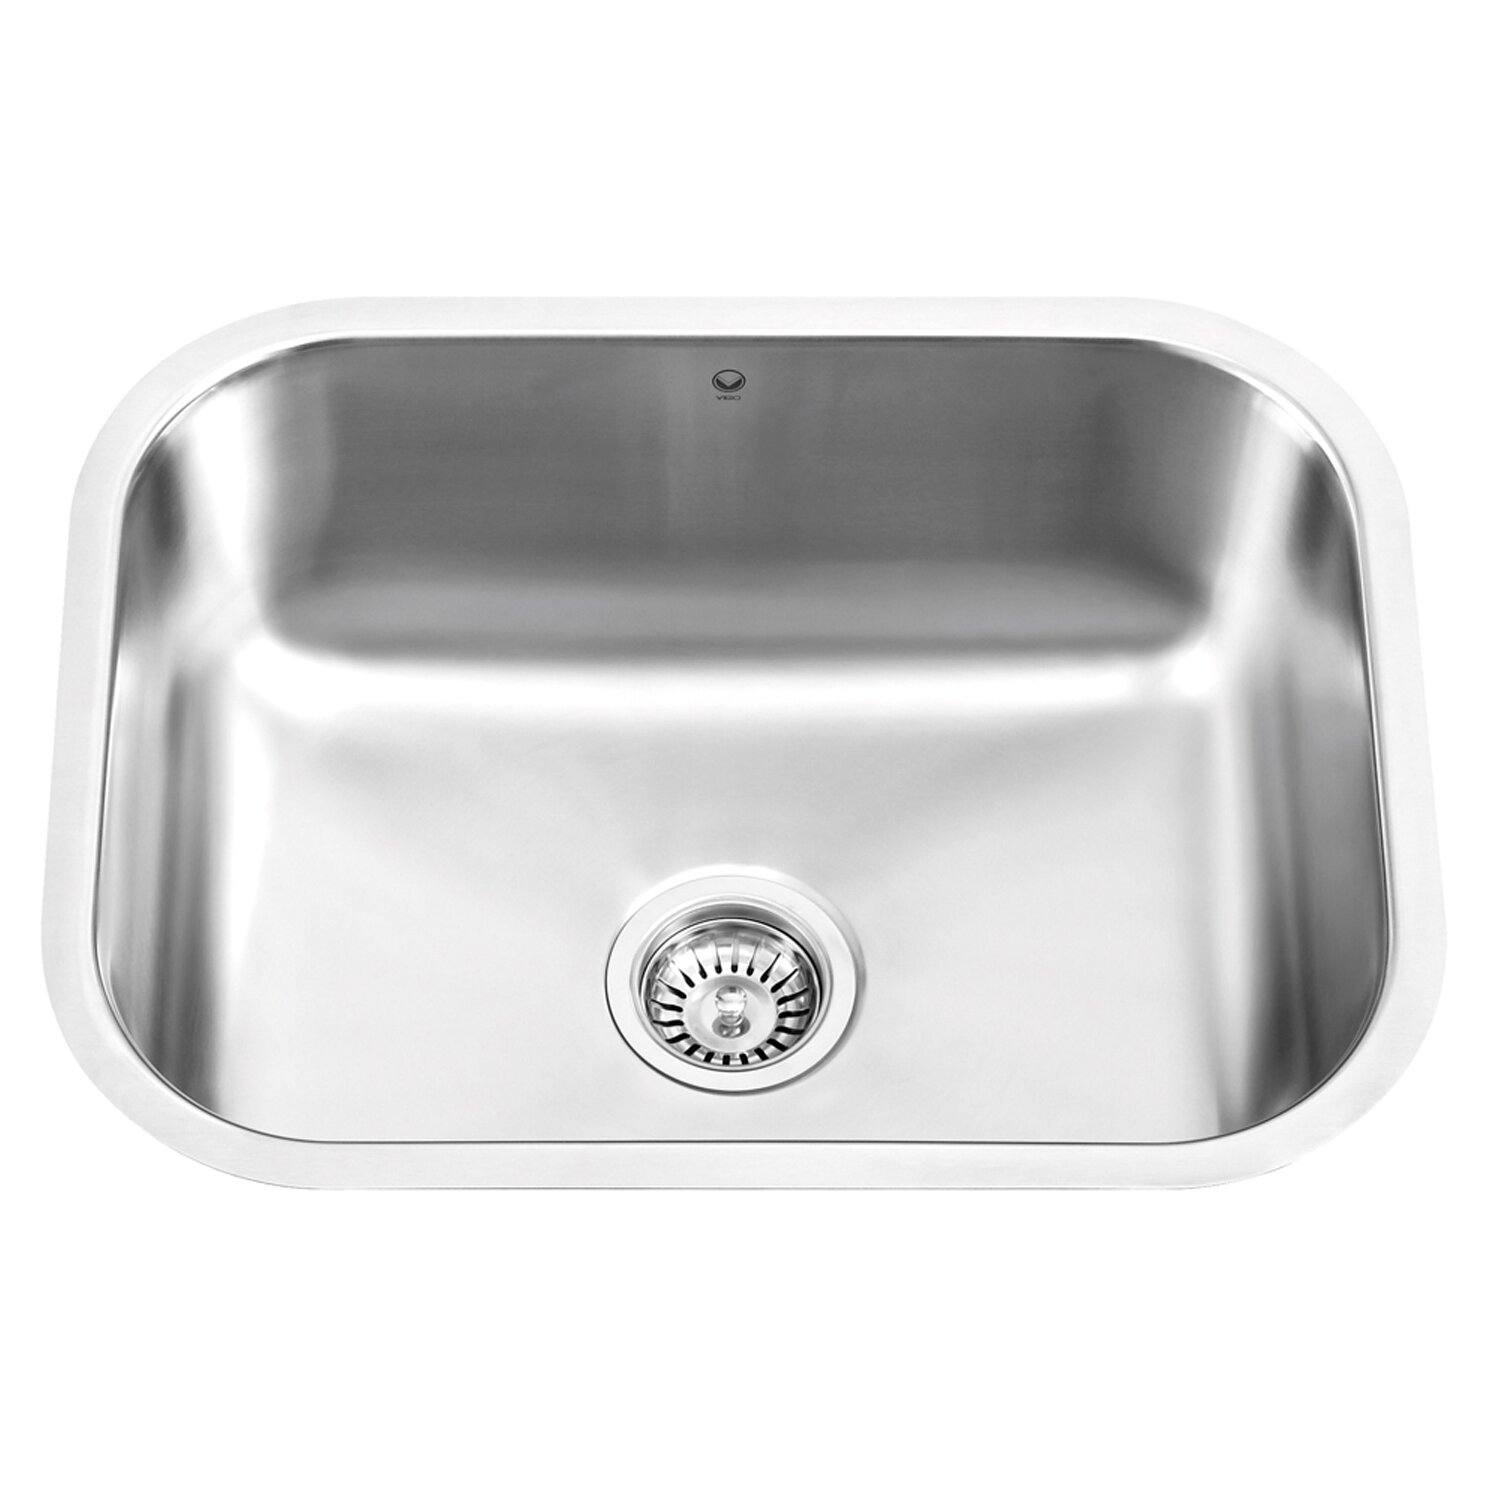 23 inch undermount single bowl 18 gauge stainless steel kitchen sink - Stainless Steel Kitchen Sink Gauge